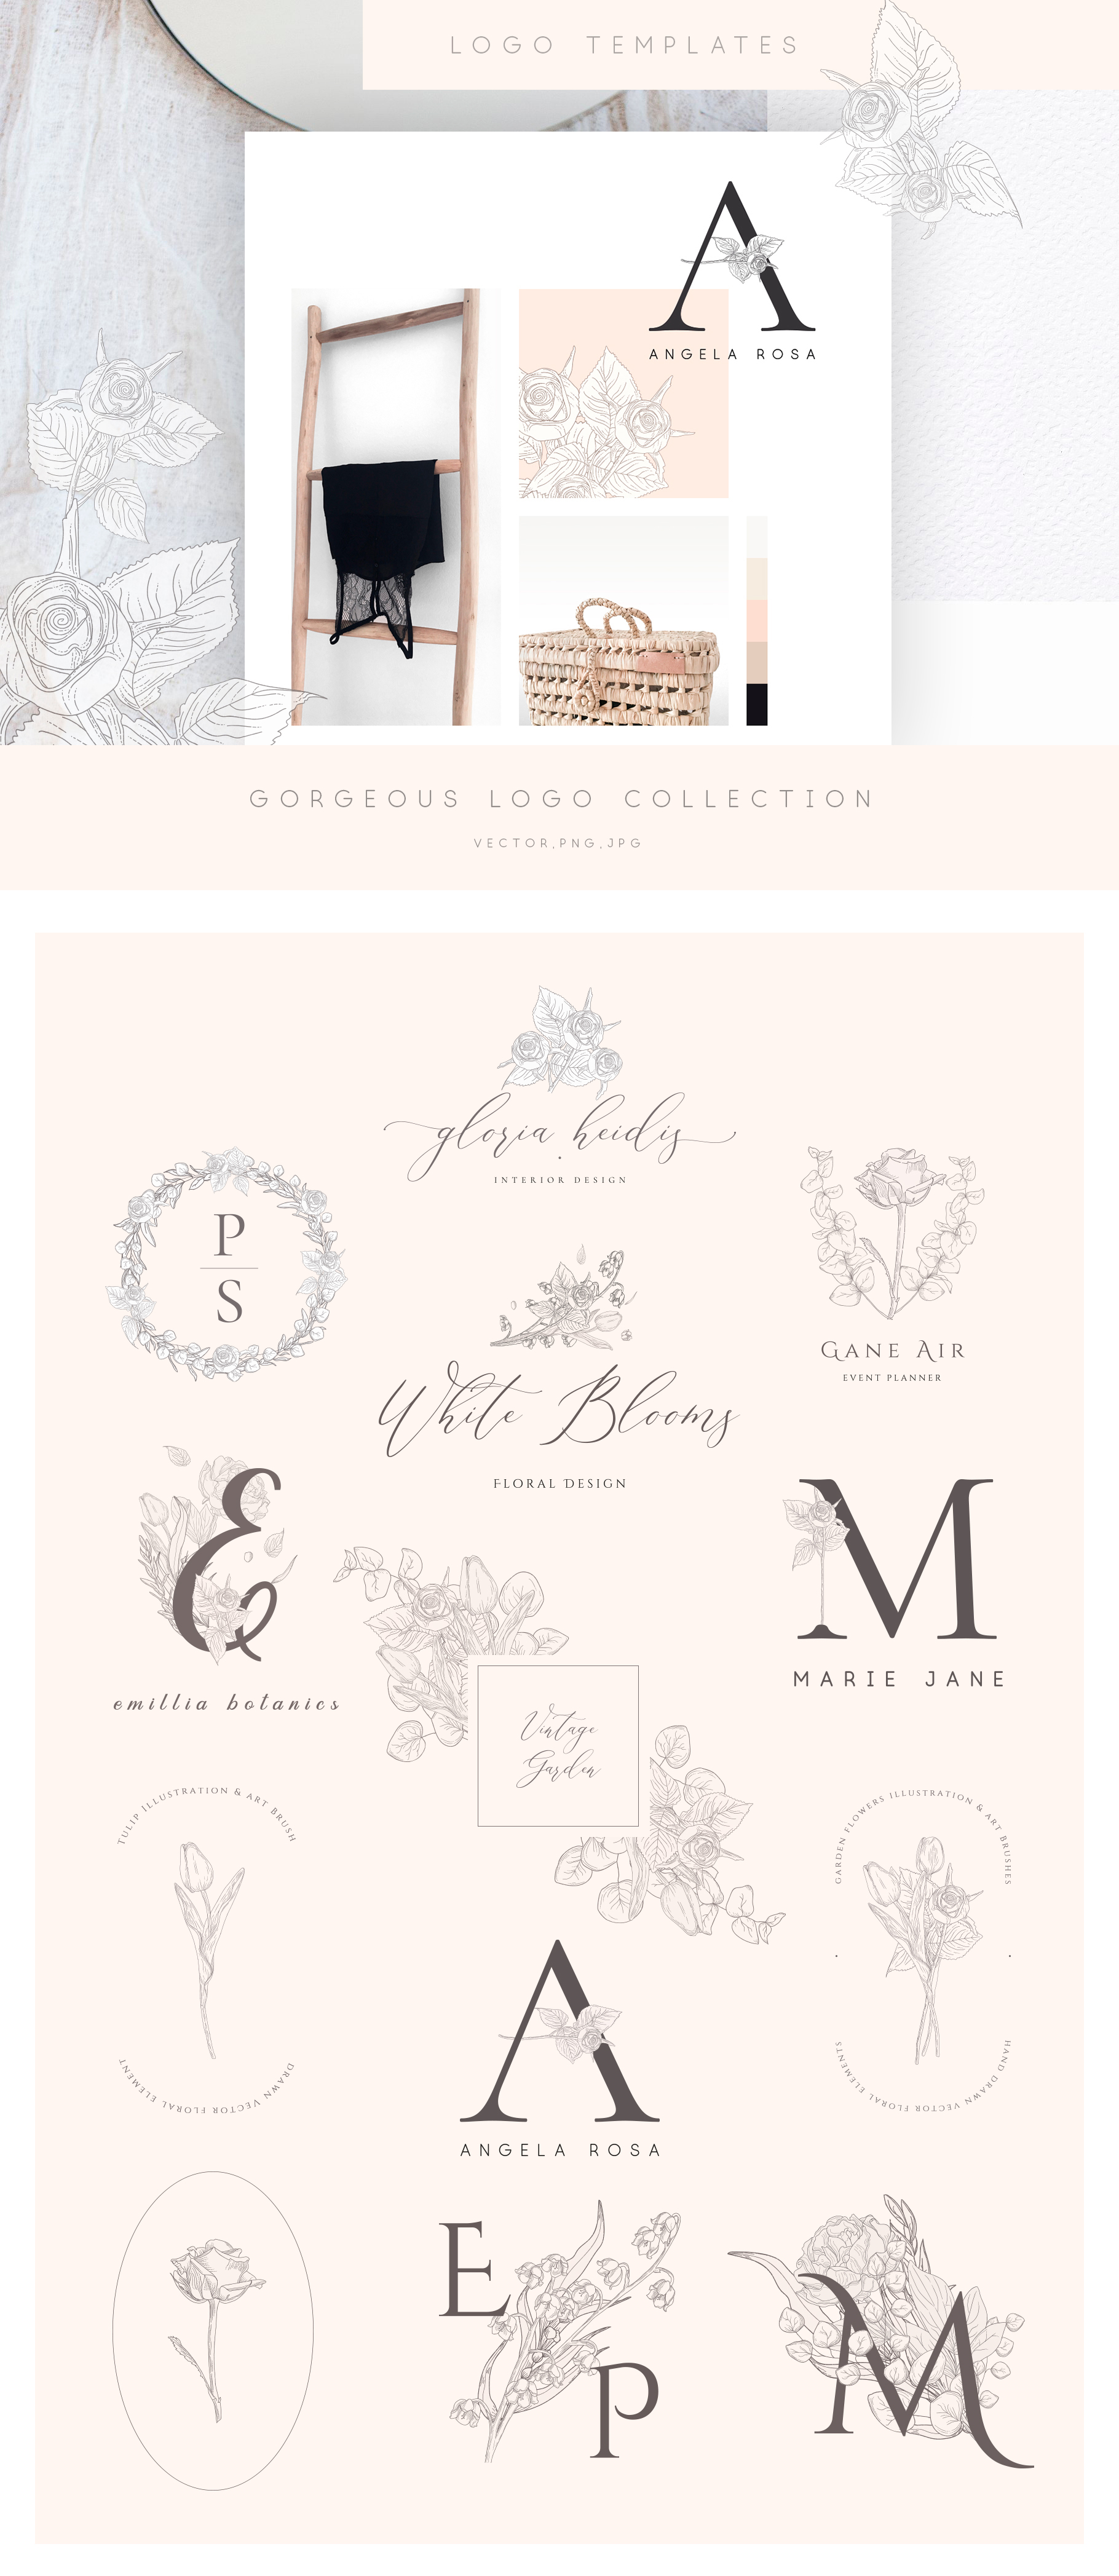 Floral Graphics, Logos, Patterns example image 2